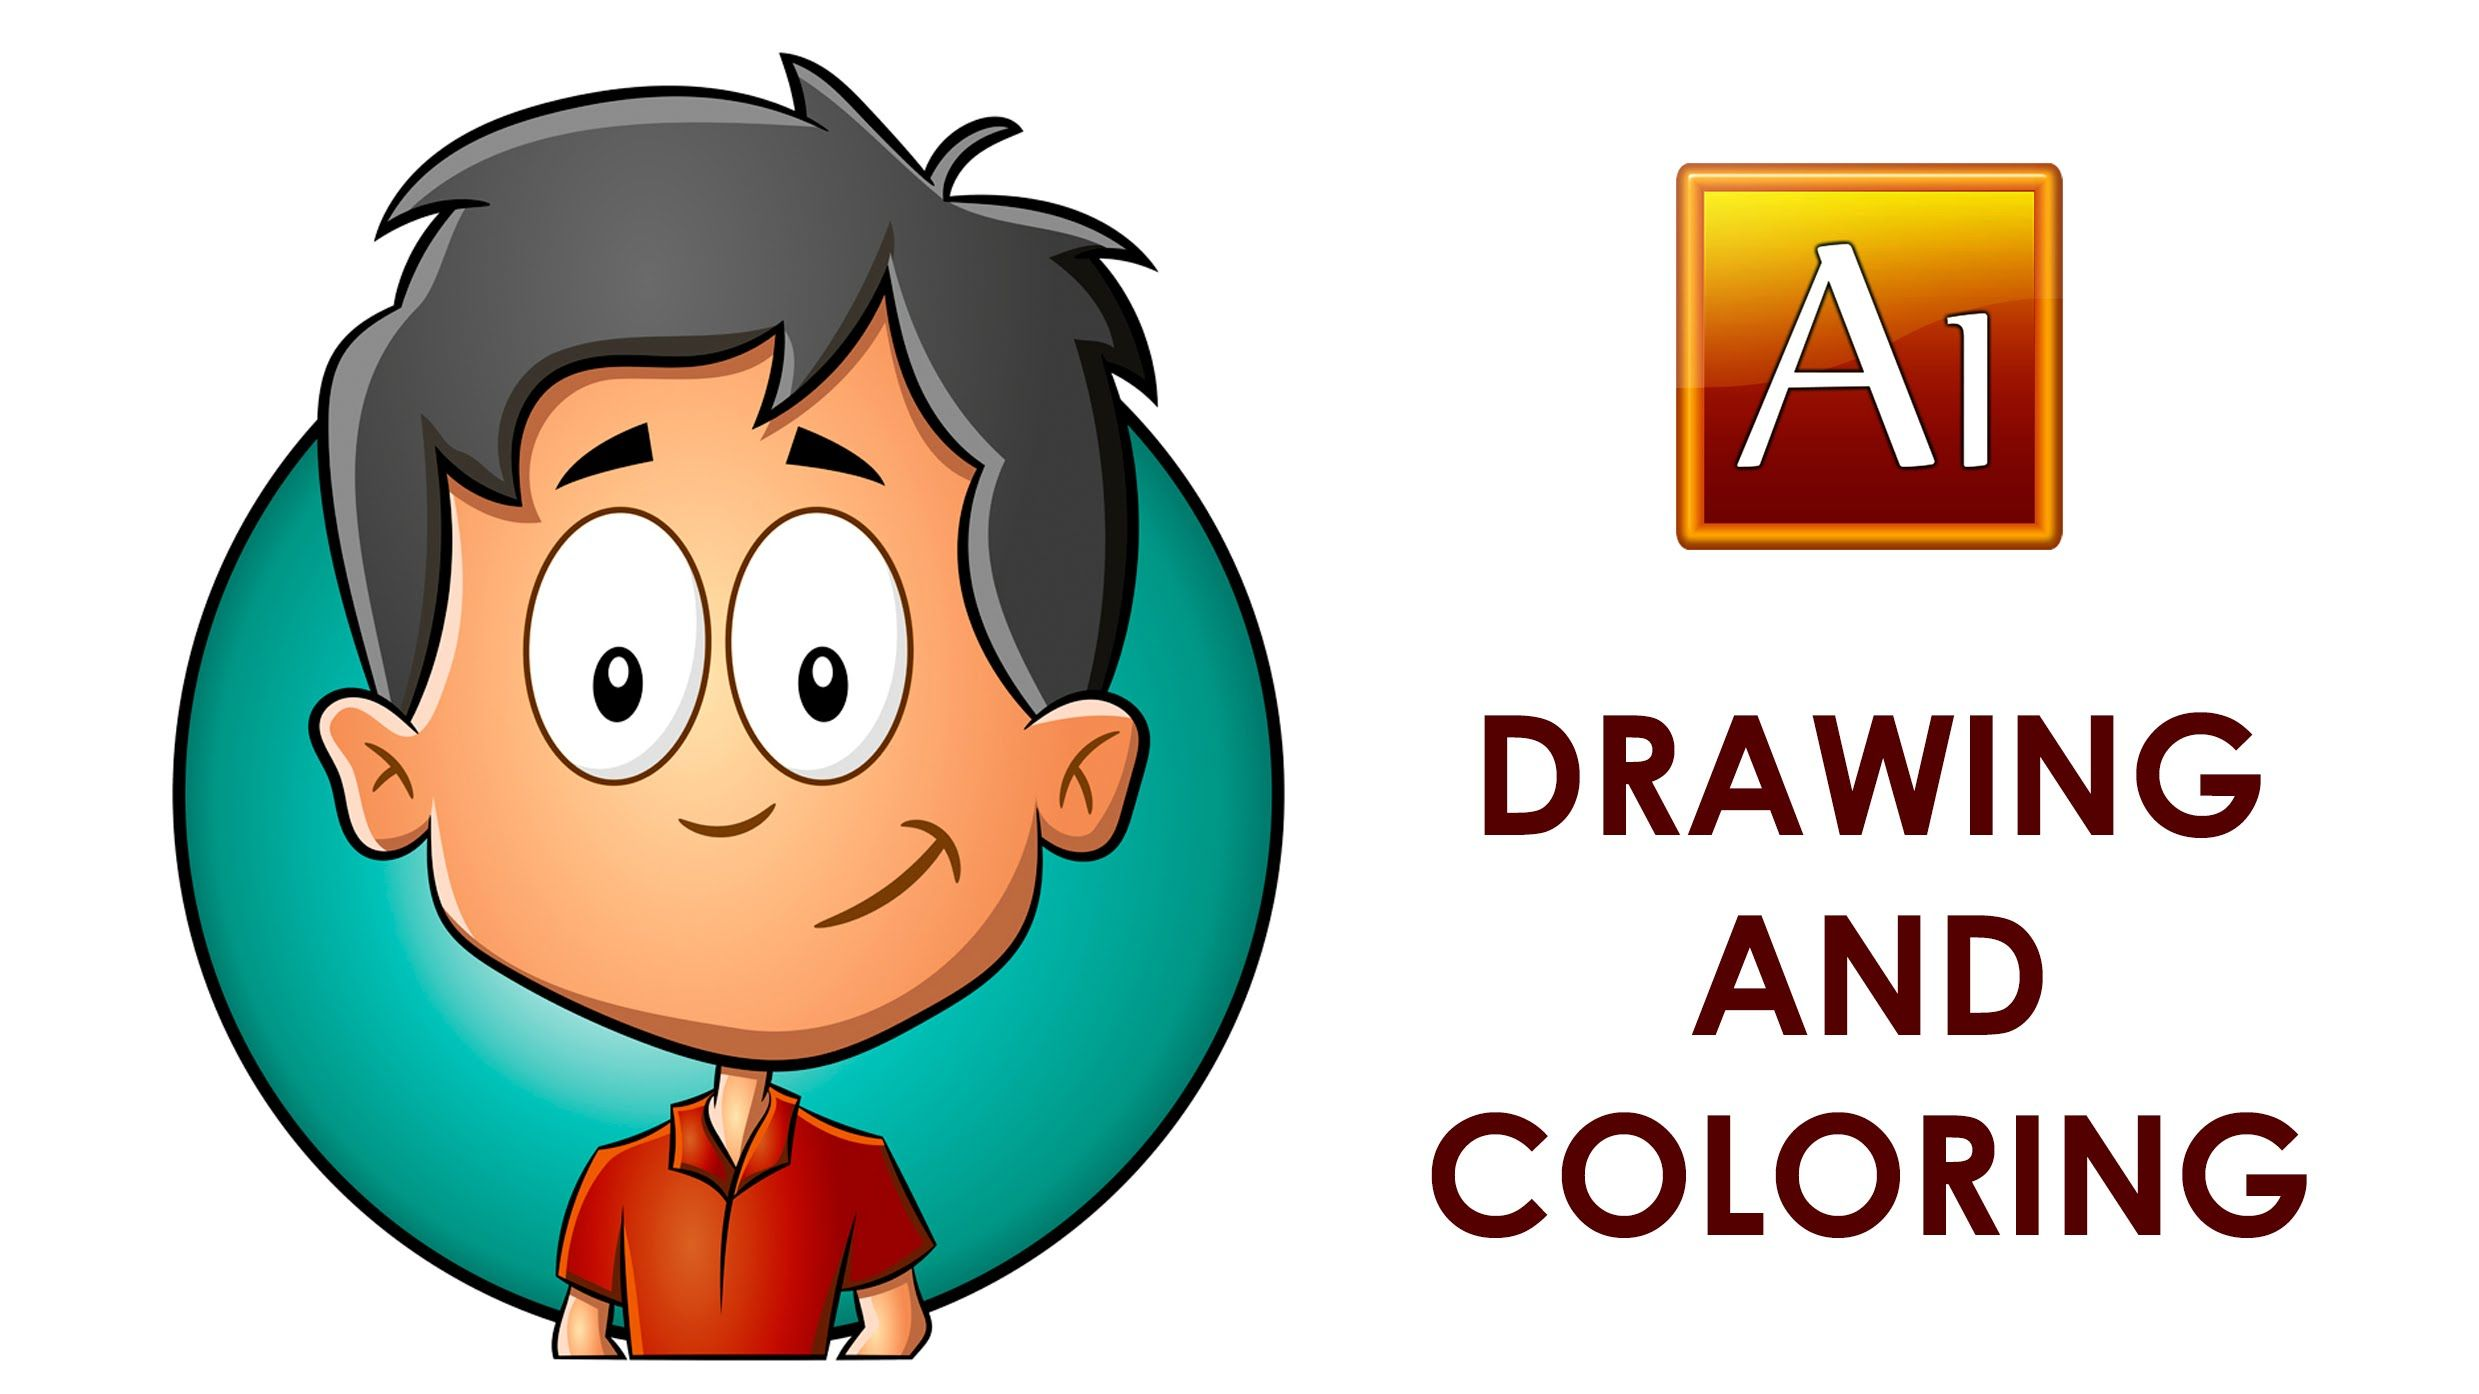 Adobe Illustrator Drawing And Coloring A Cartoon Child Adobe Illustrator Draw Childrens Illustrations Design Quotes Art